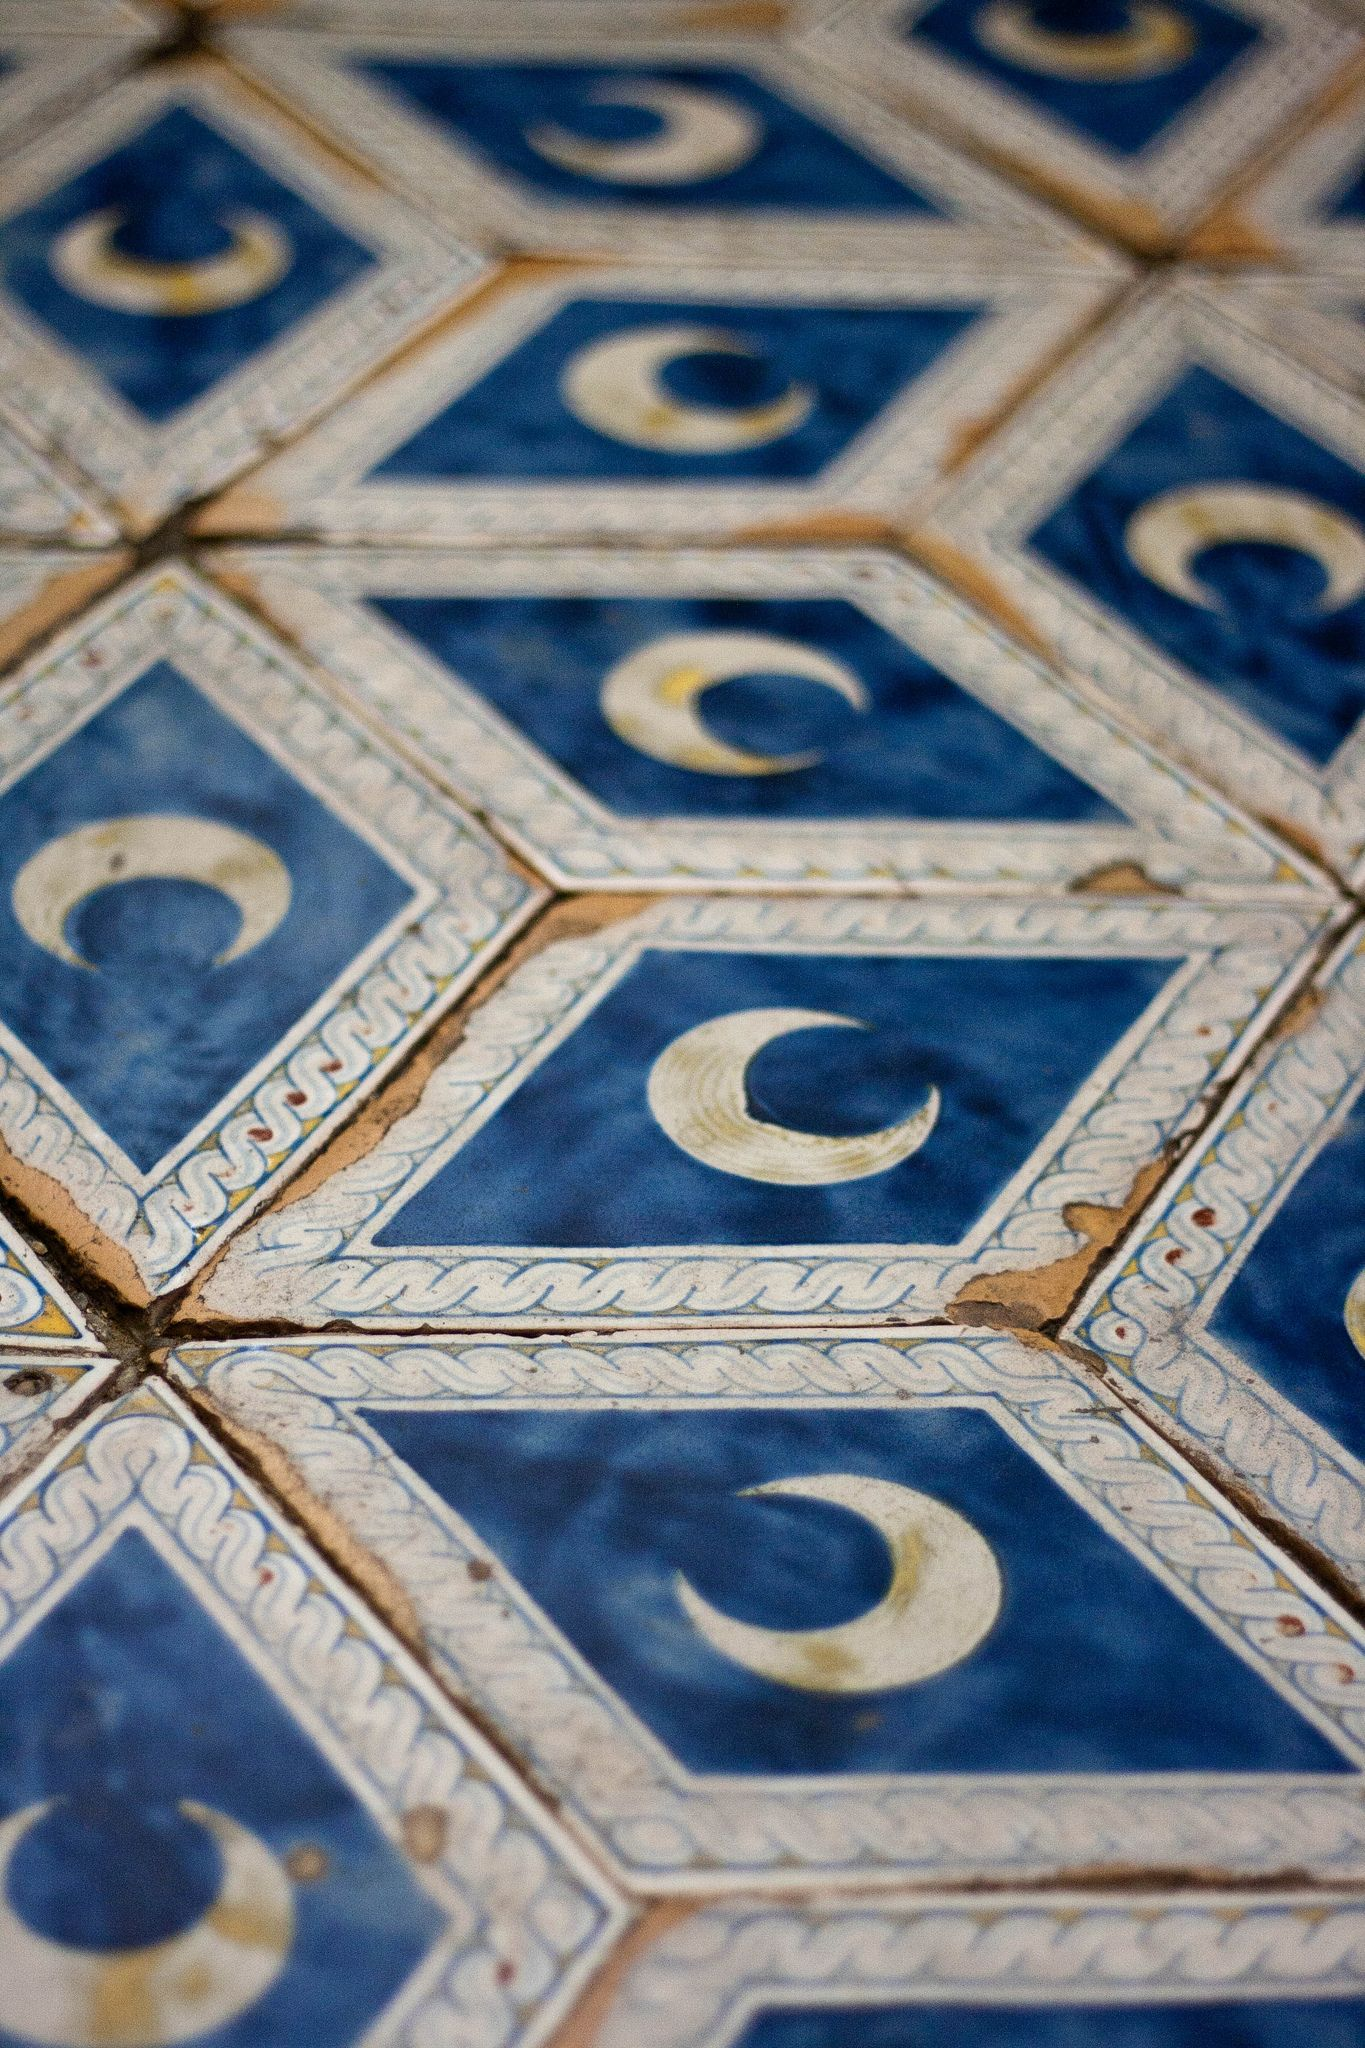 Piccolomini | Siena cathedral and Tile flooring